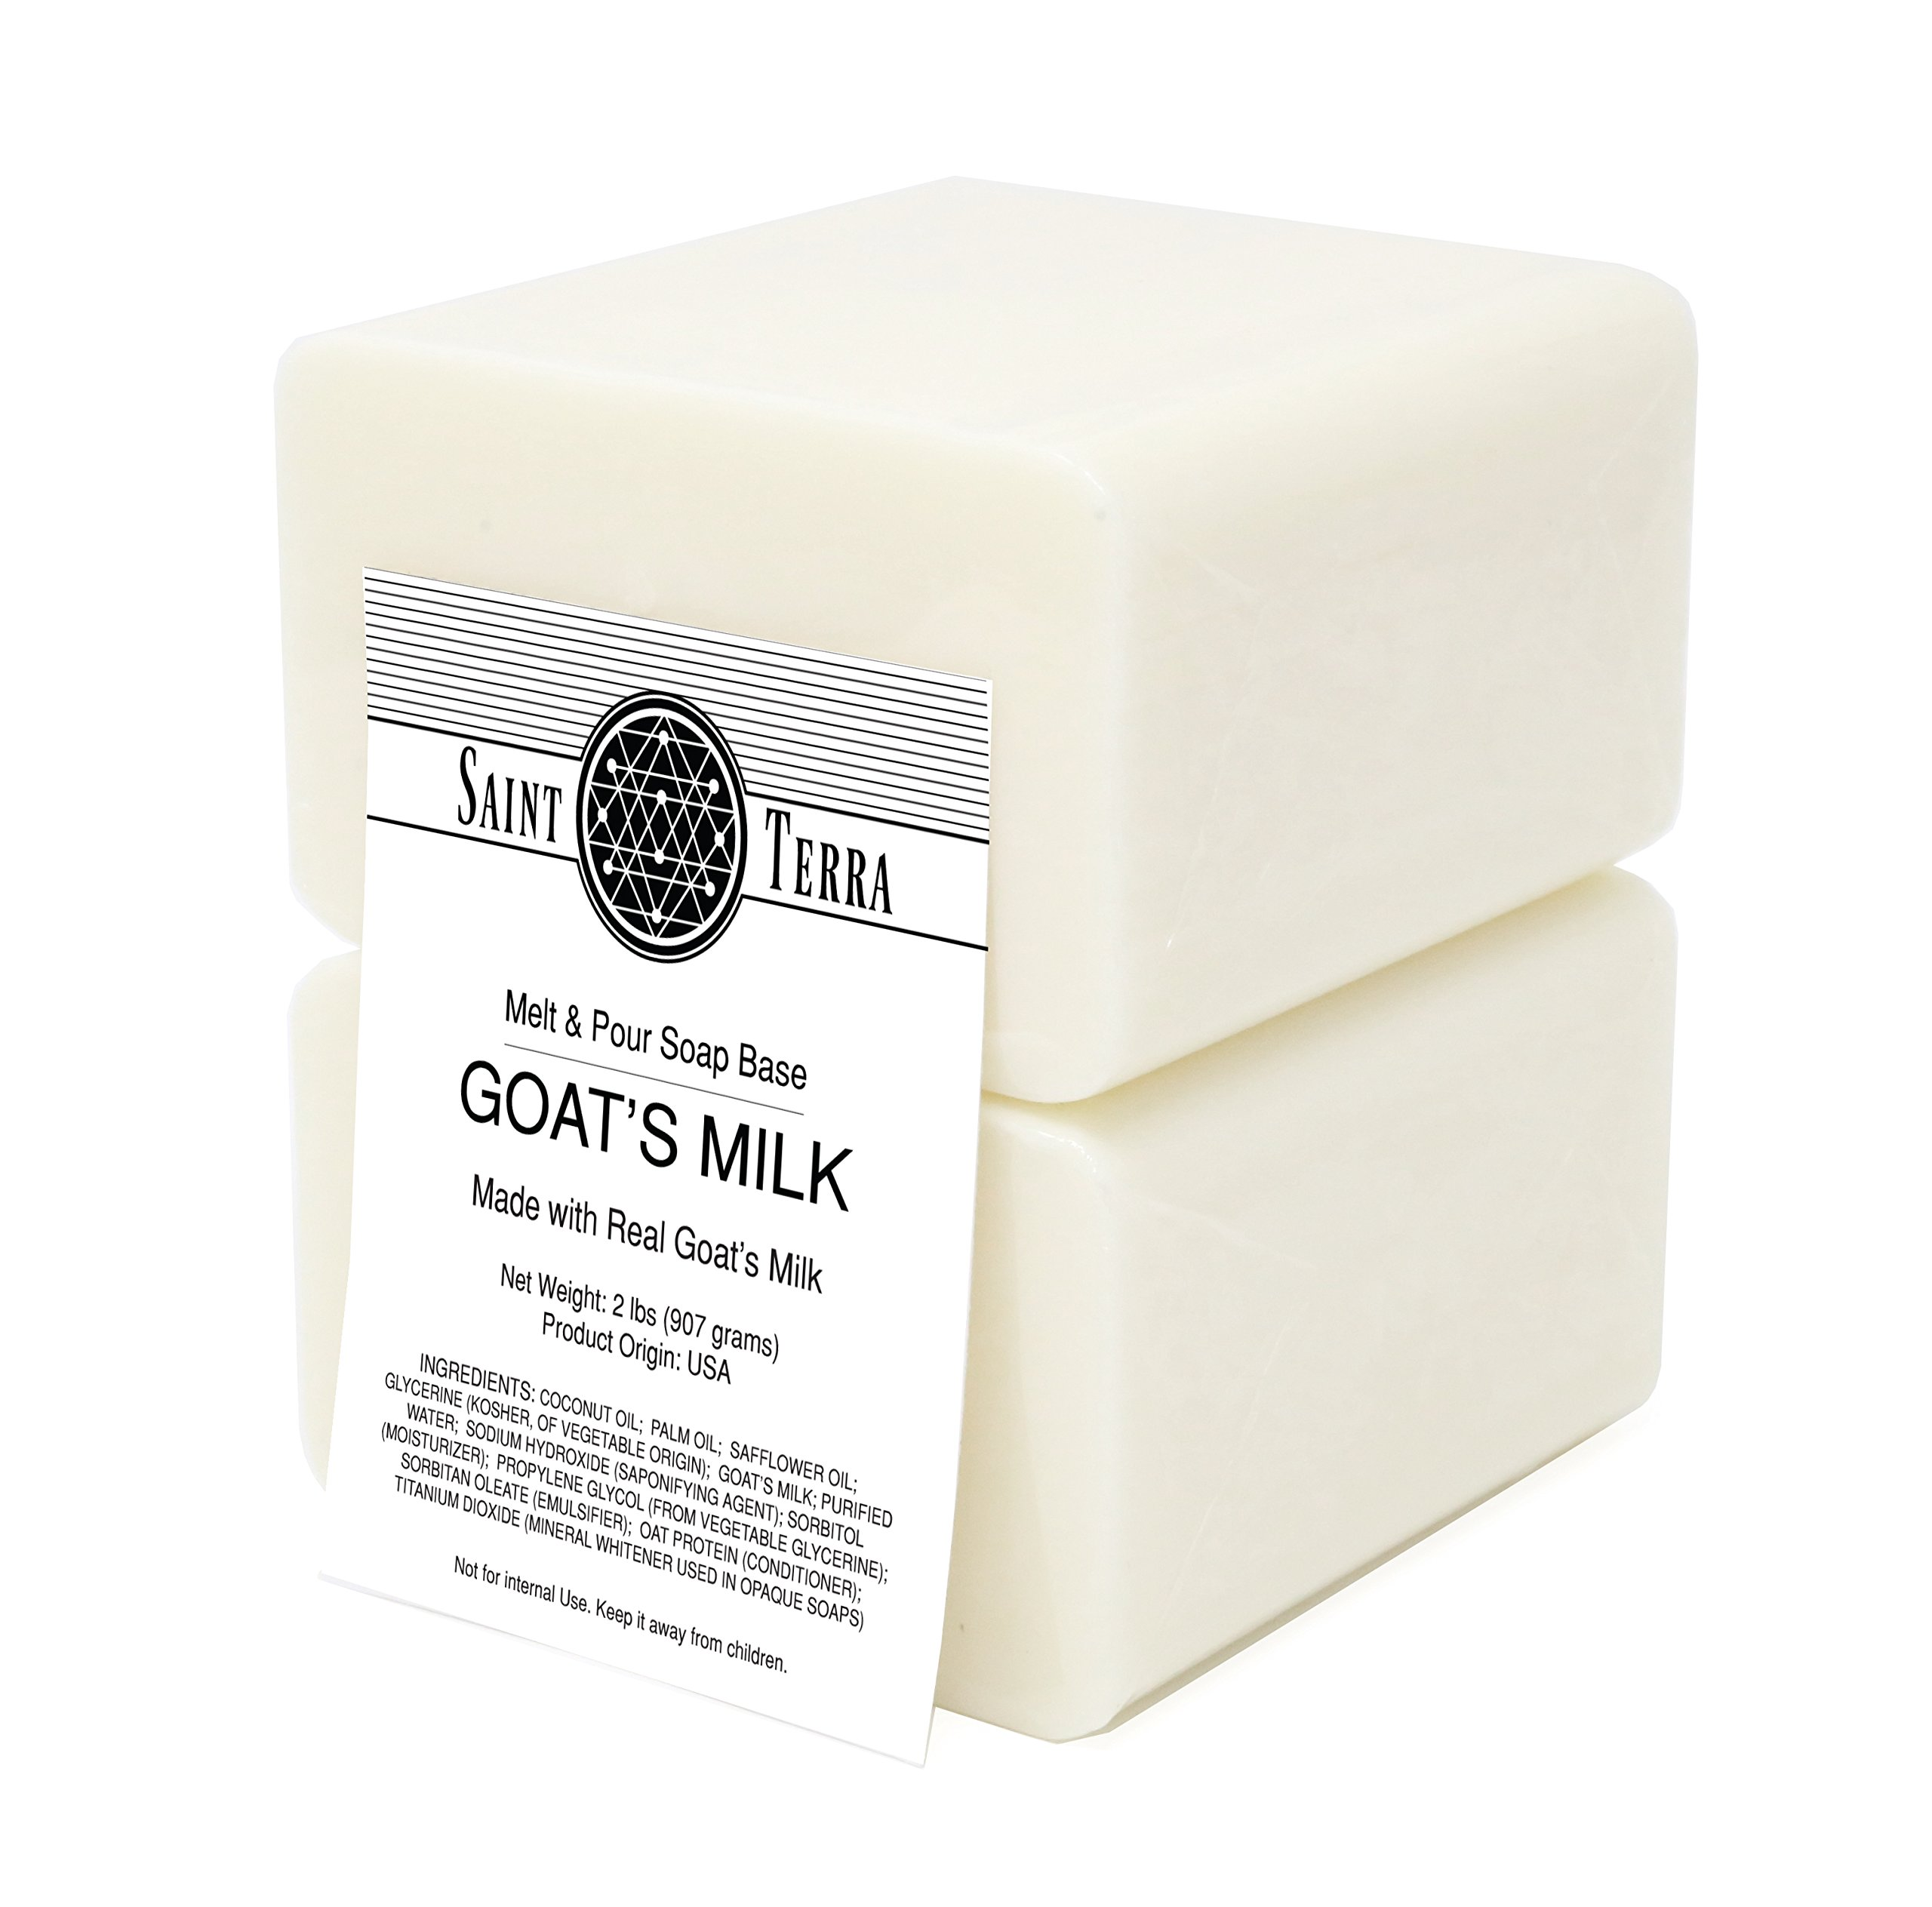 Saint Terra - Goat's Milk 2 Lbs Melt & Pour Soap Base